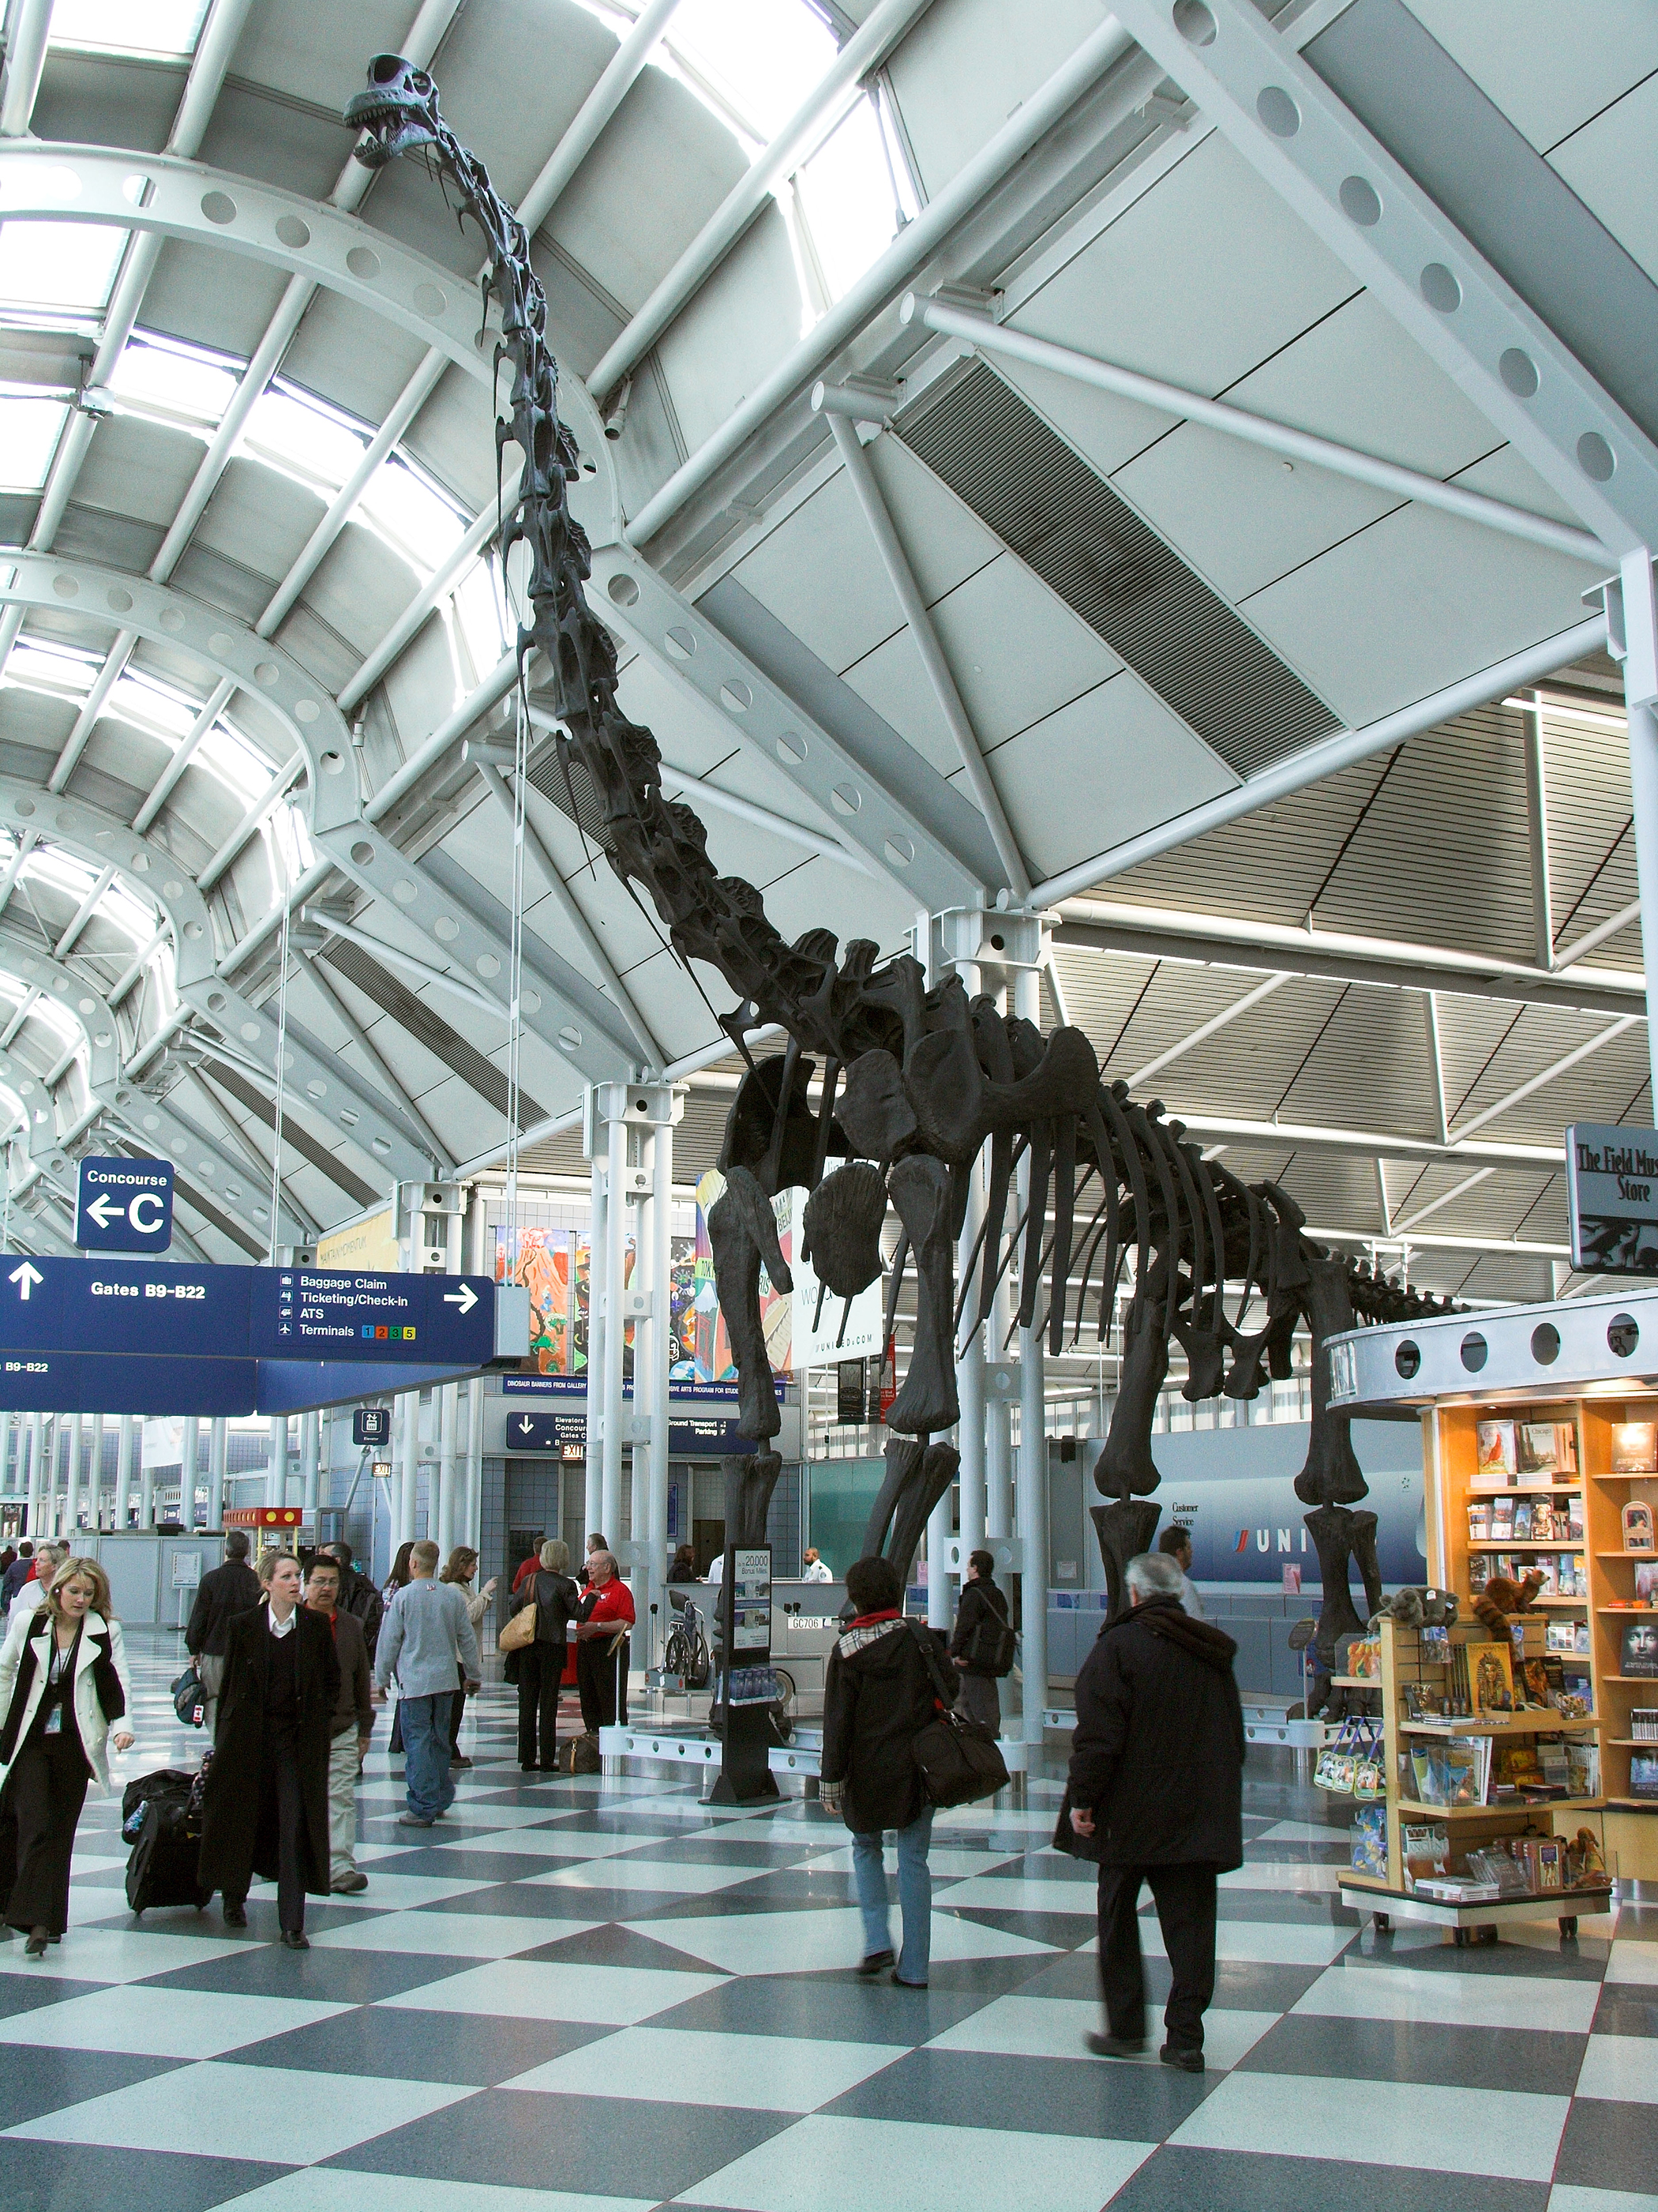 Moulded dinosaur skeleton in United Airlines Chicago OHare Airport terminal promoting airline partner the Chicago Field Museum